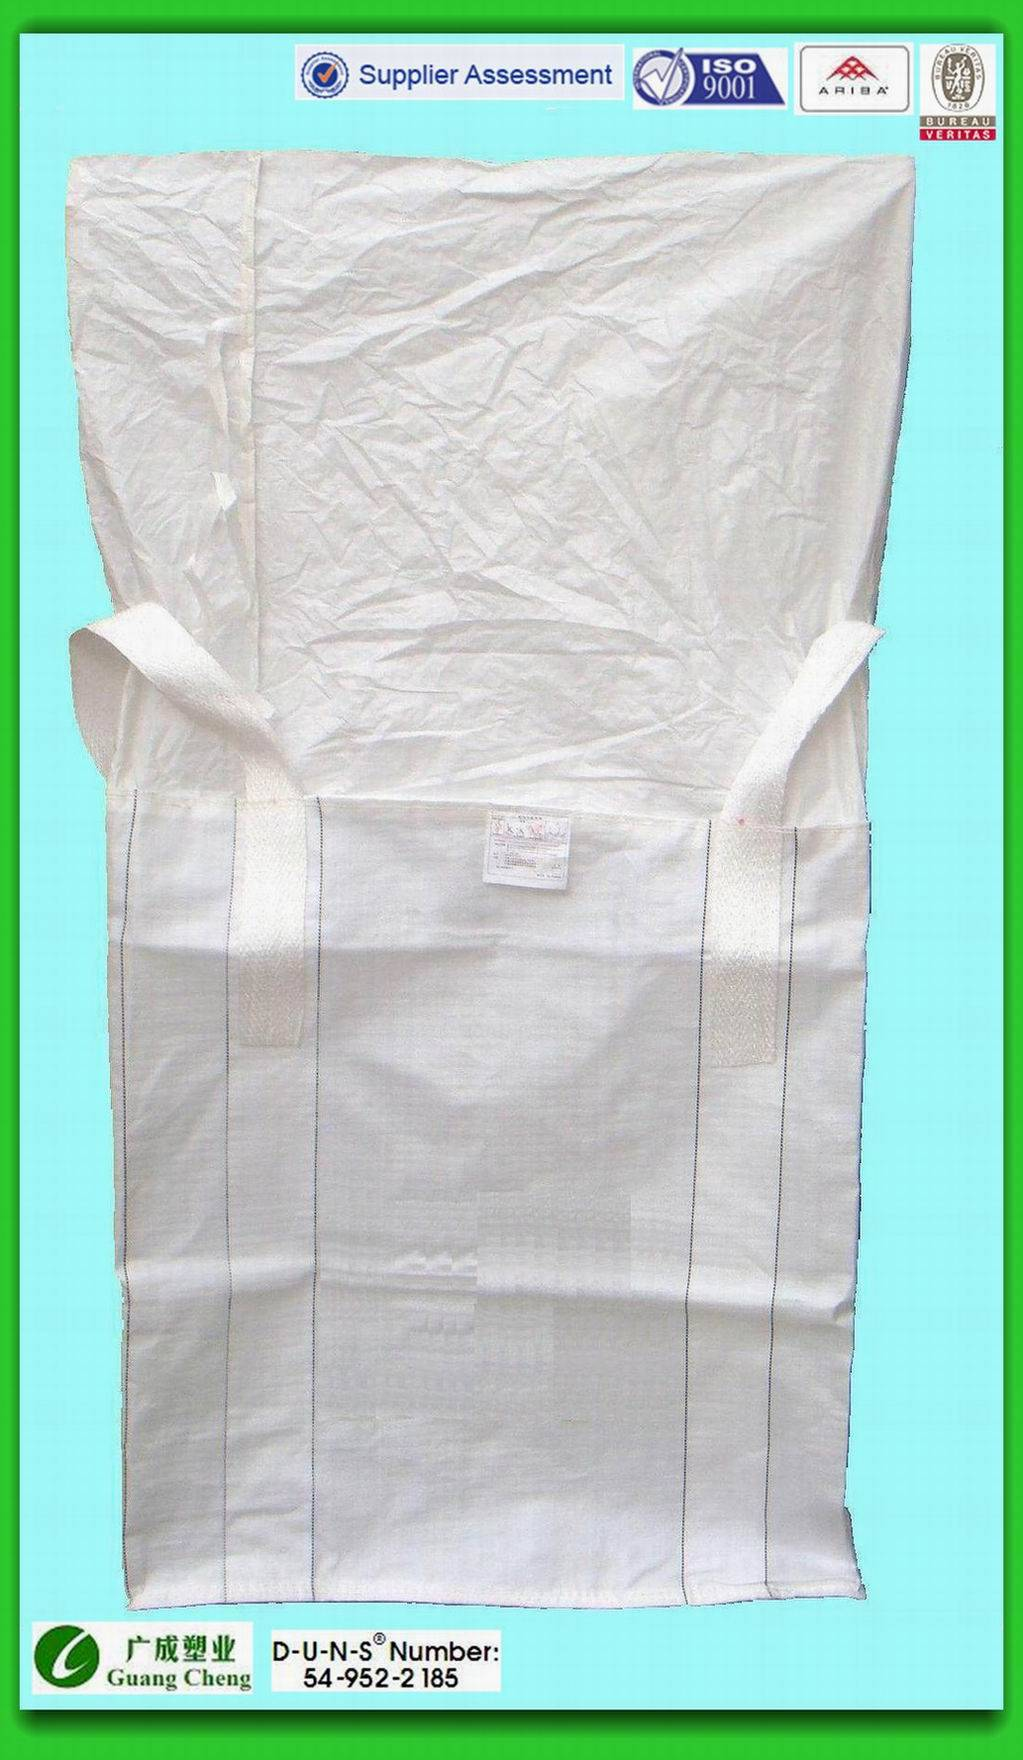 1 Ton Big Bag or FIBC or Bulk Bag for for building material with documents any choosen color